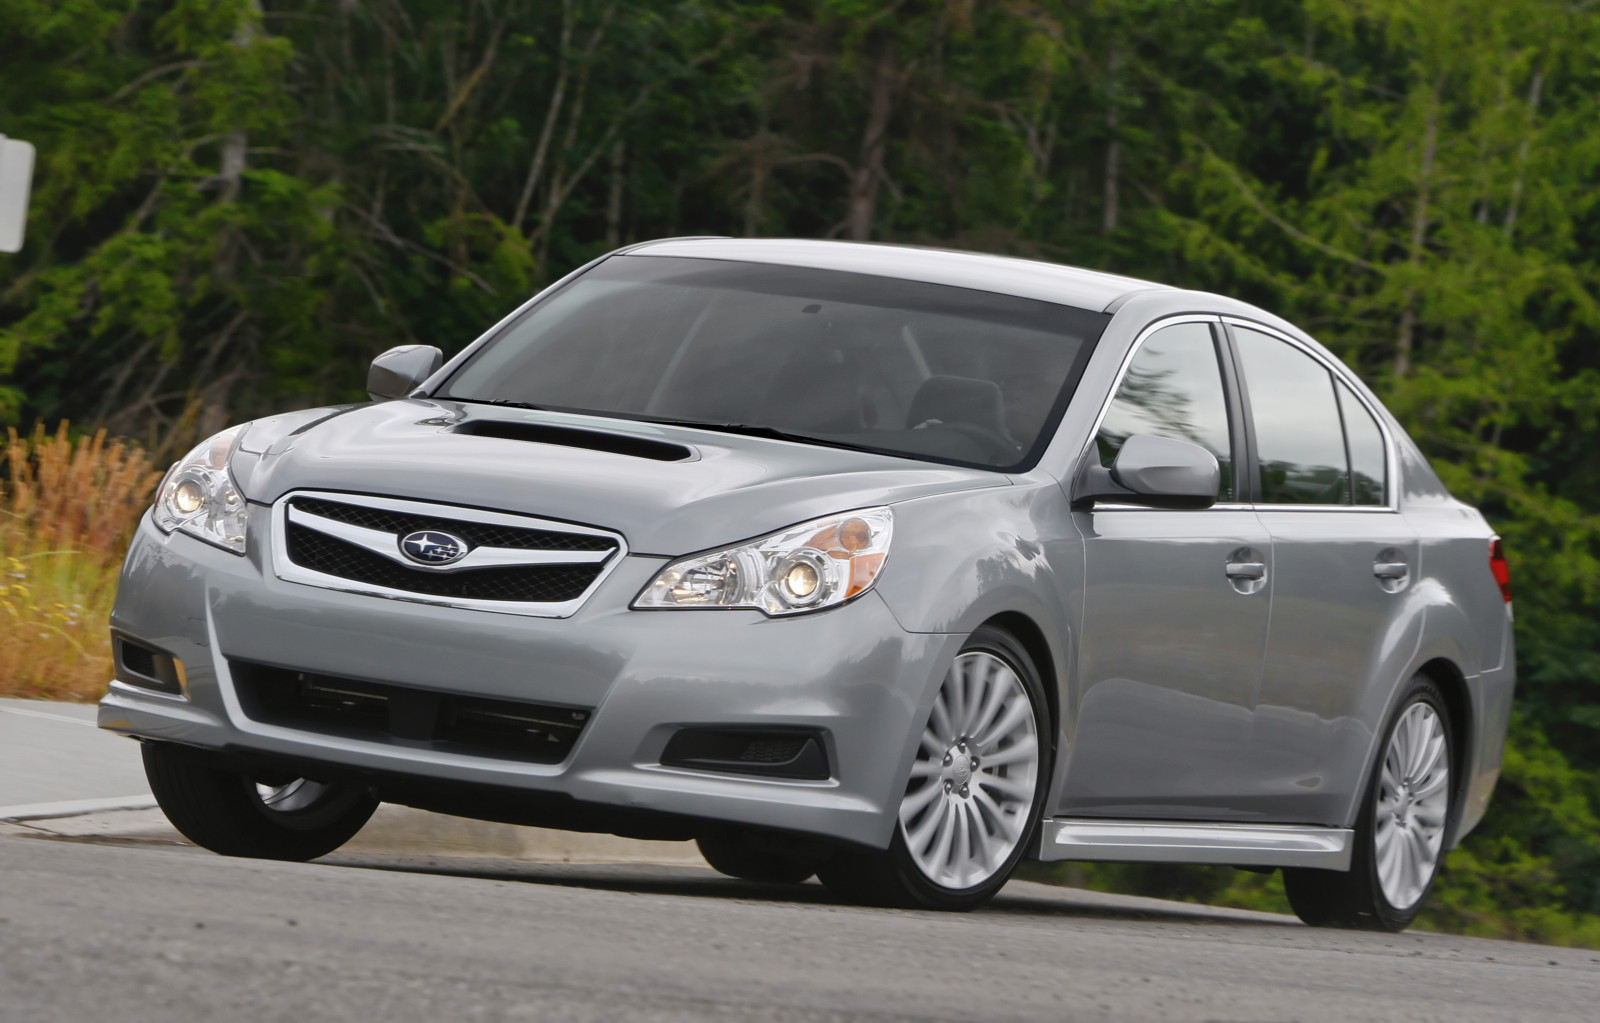 2010 subaru legacy better bumpers cut repair costs says iihs vanachro Images